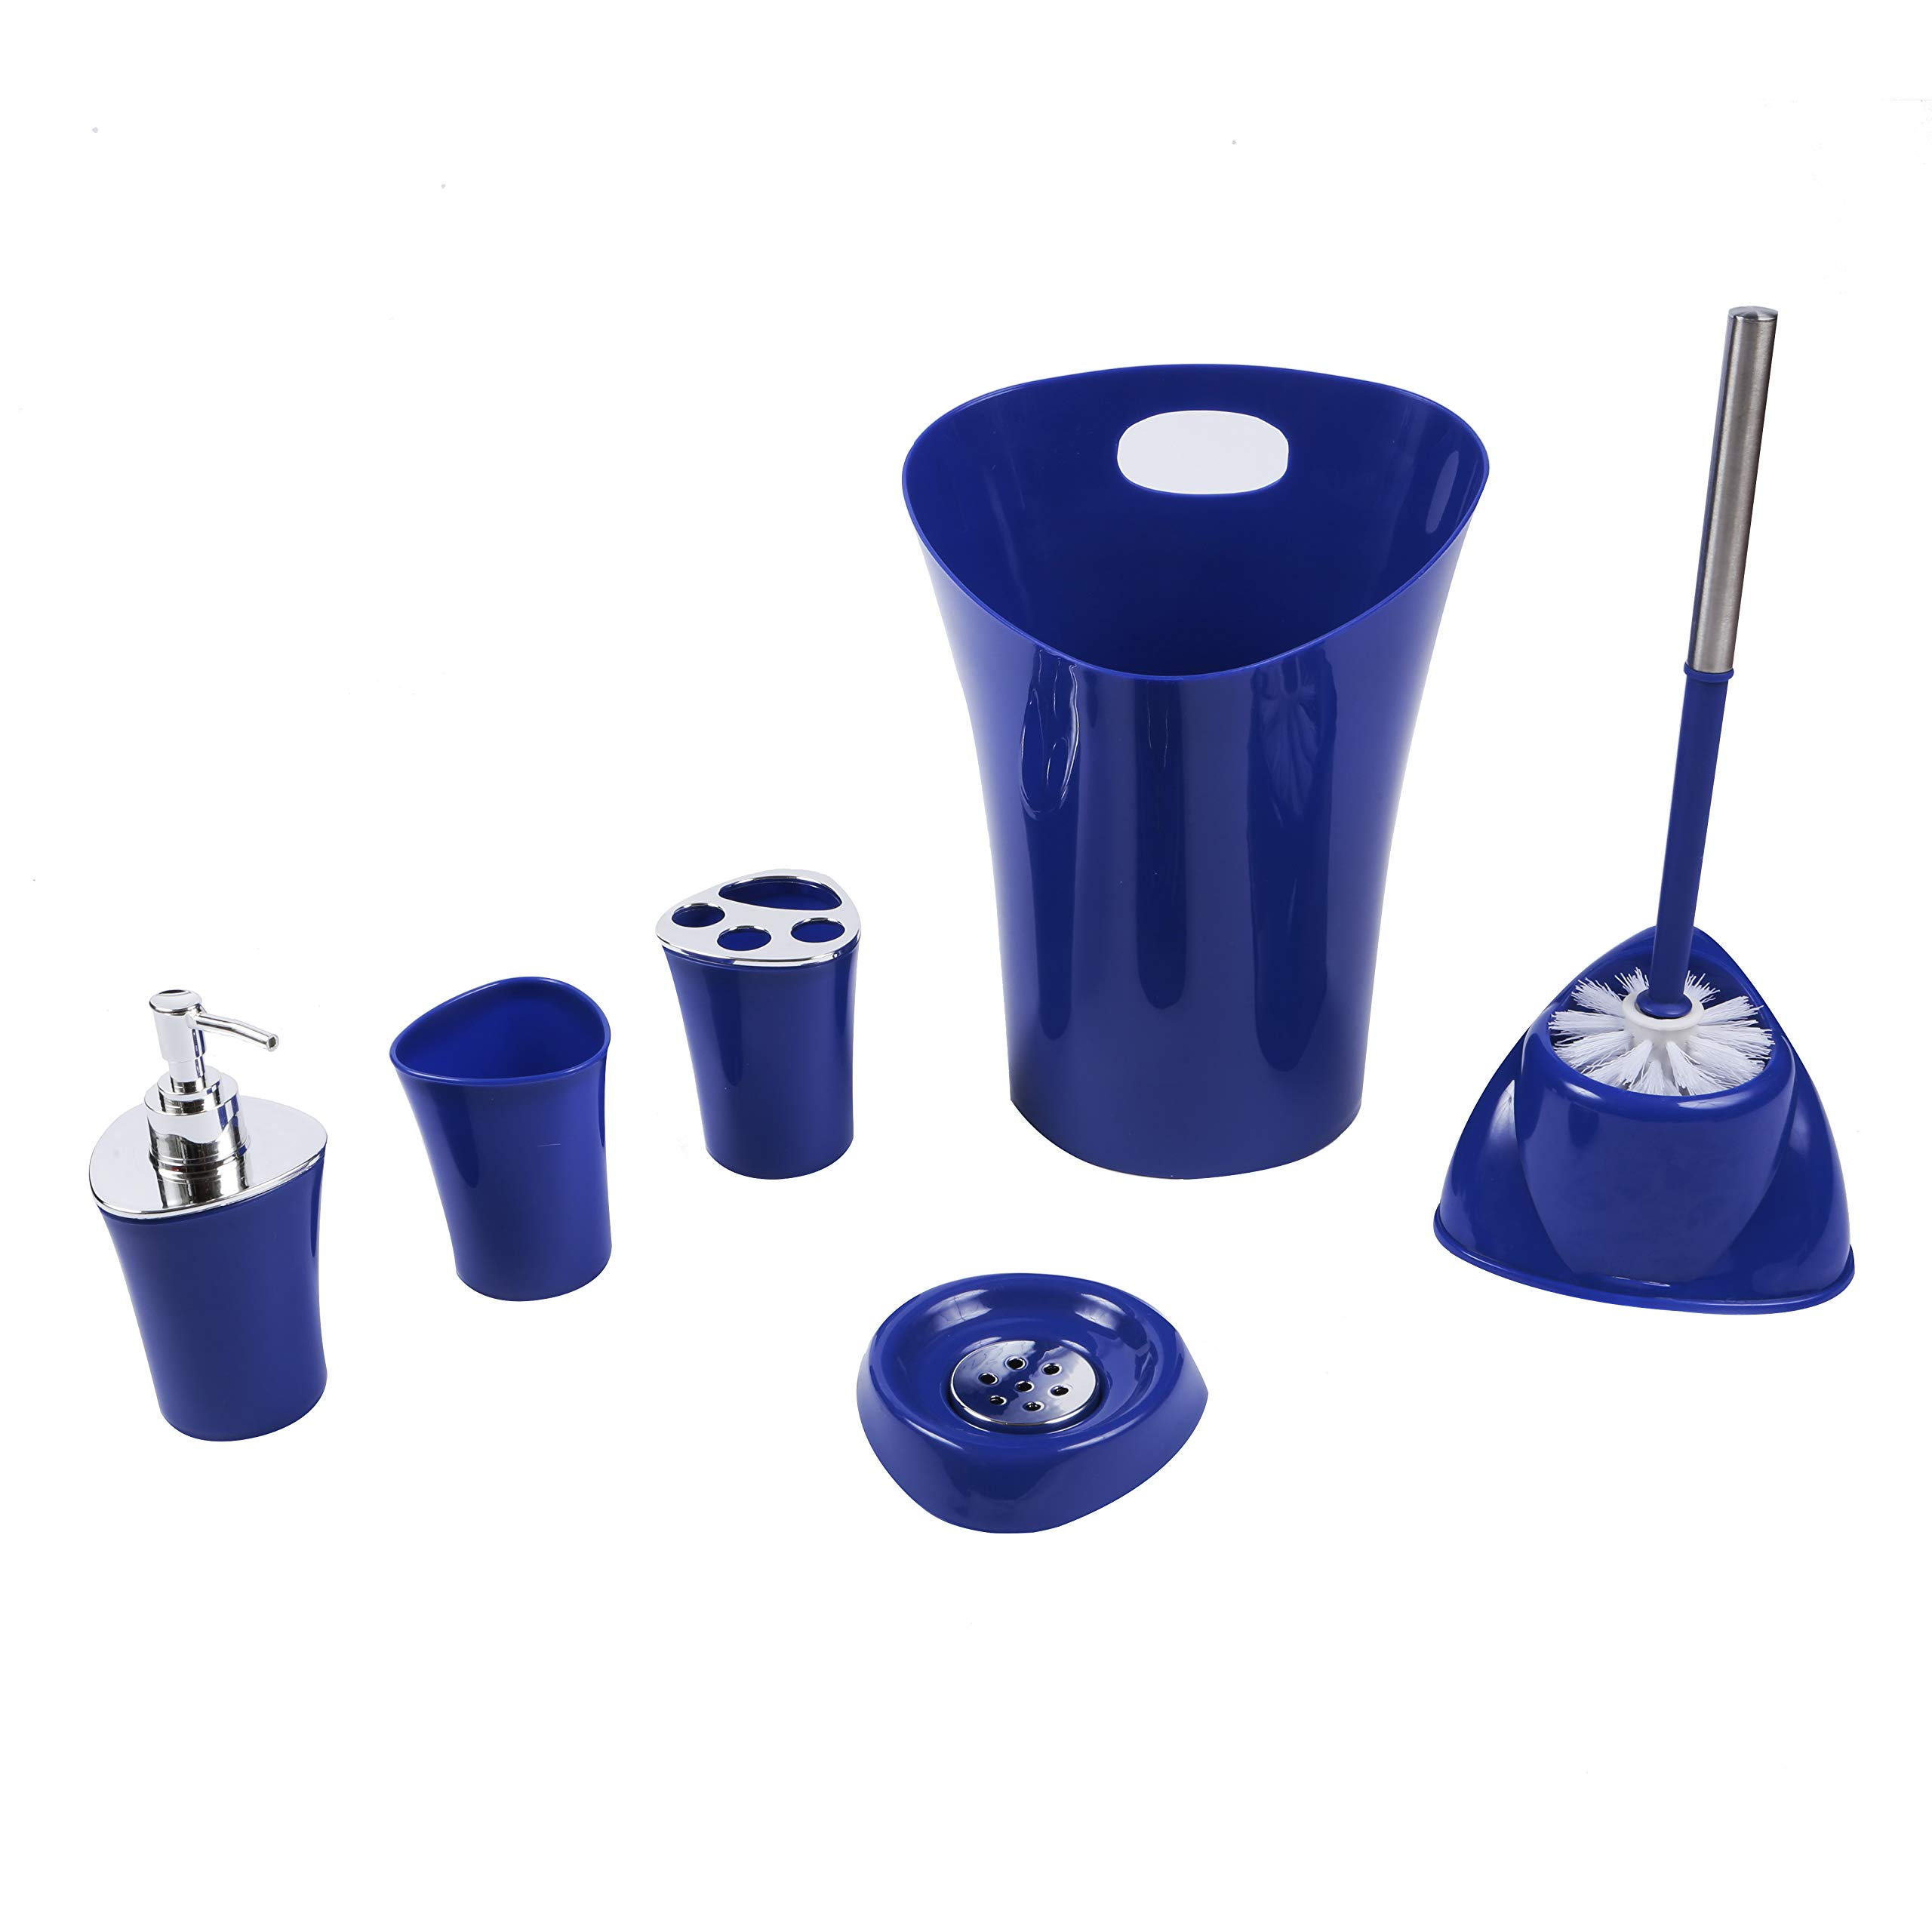 Zuvo: Bathroom Accessories Set - 6 Pieces, Waste Bin, Soap Dish, Lotion Dispenser, Toothbrush Holder, Rinse Cup/Tumbler, Toilet Brush (Blue)